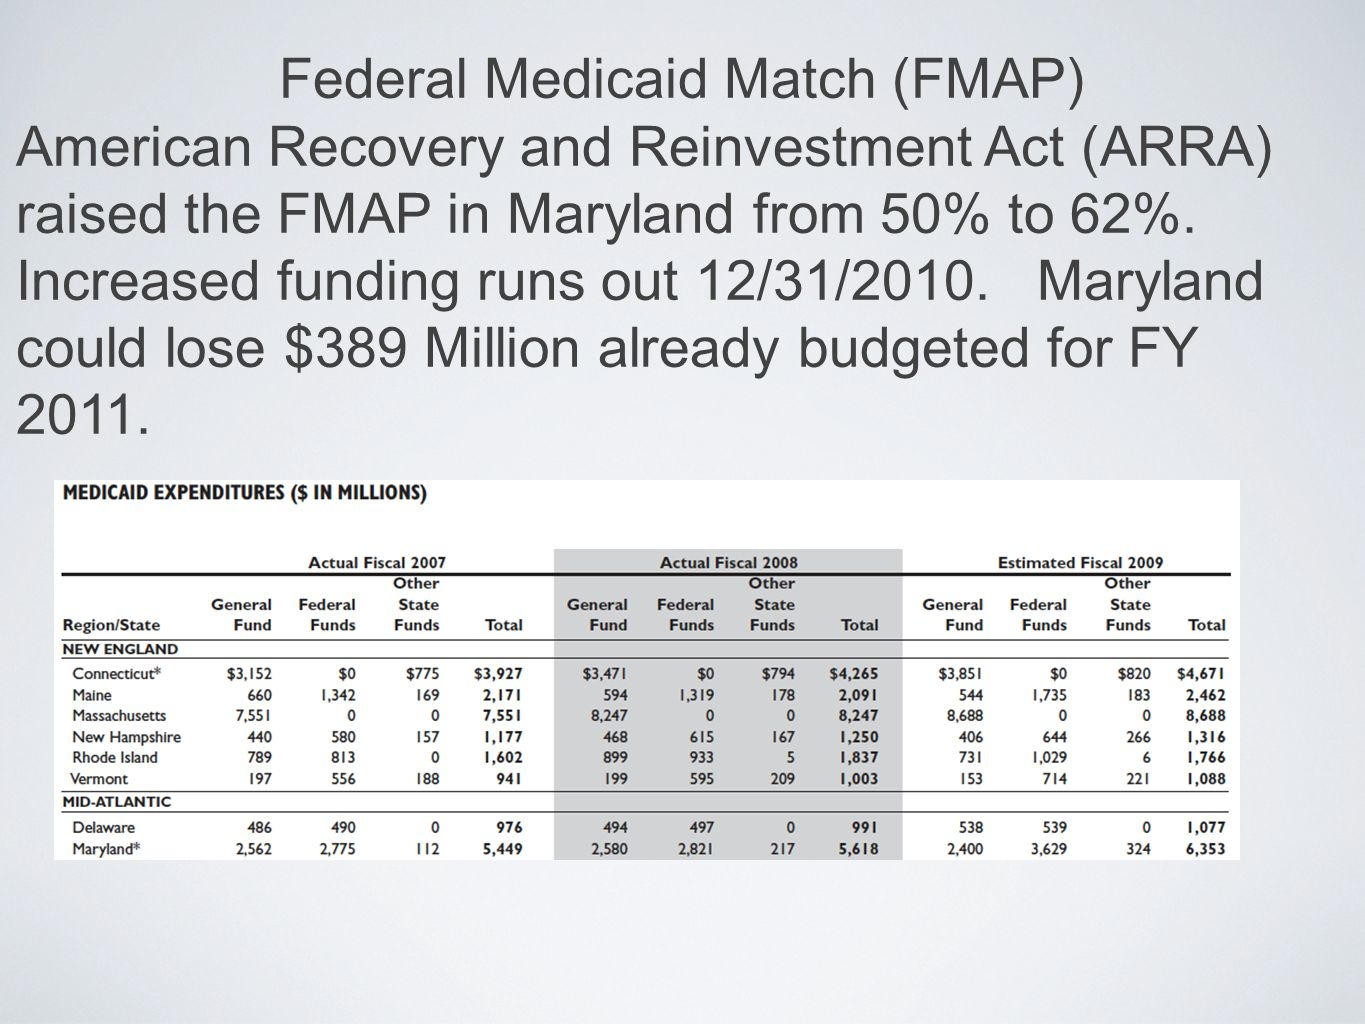 Federal Medicaid Match (FMAP) American Recovery and Reinvestment Act (ARRA) raised the FMAP in Maryland from 50% to 62%.